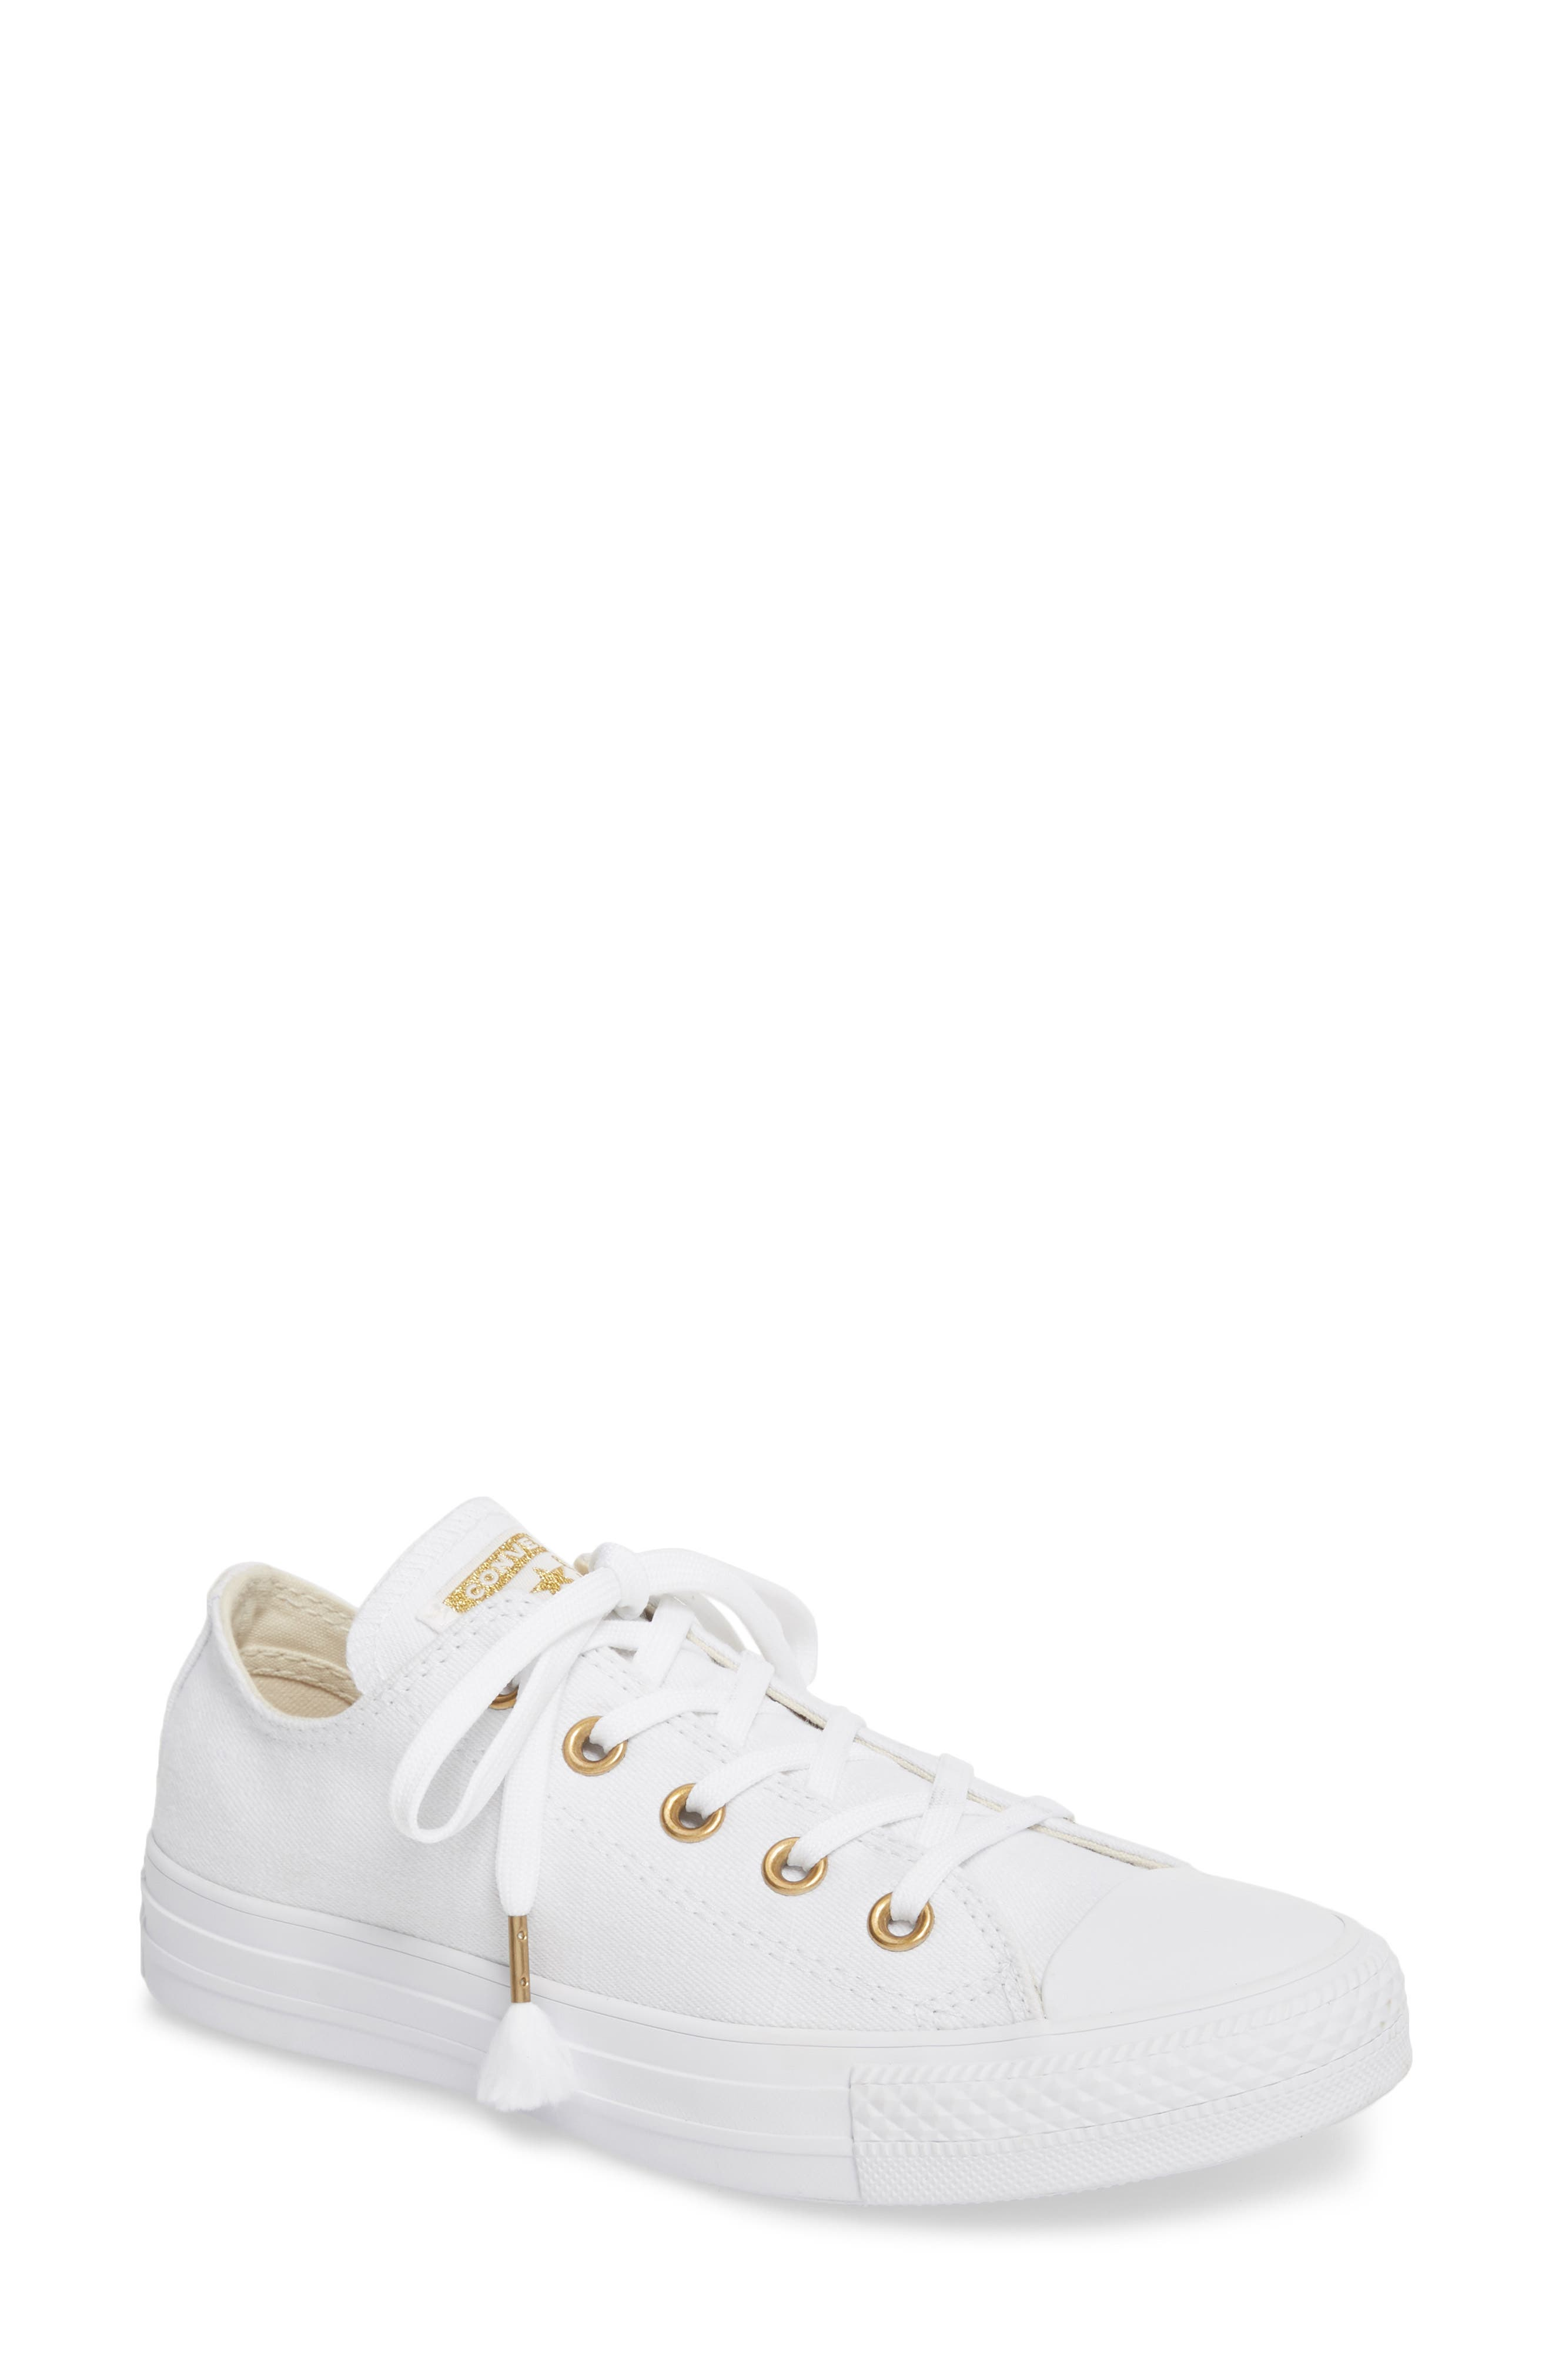 Chuck Taylor<sup>®</sup> All Star<sup>®</sup> Washed Linen Low Top Sneaker,                             Main thumbnail 2, color,